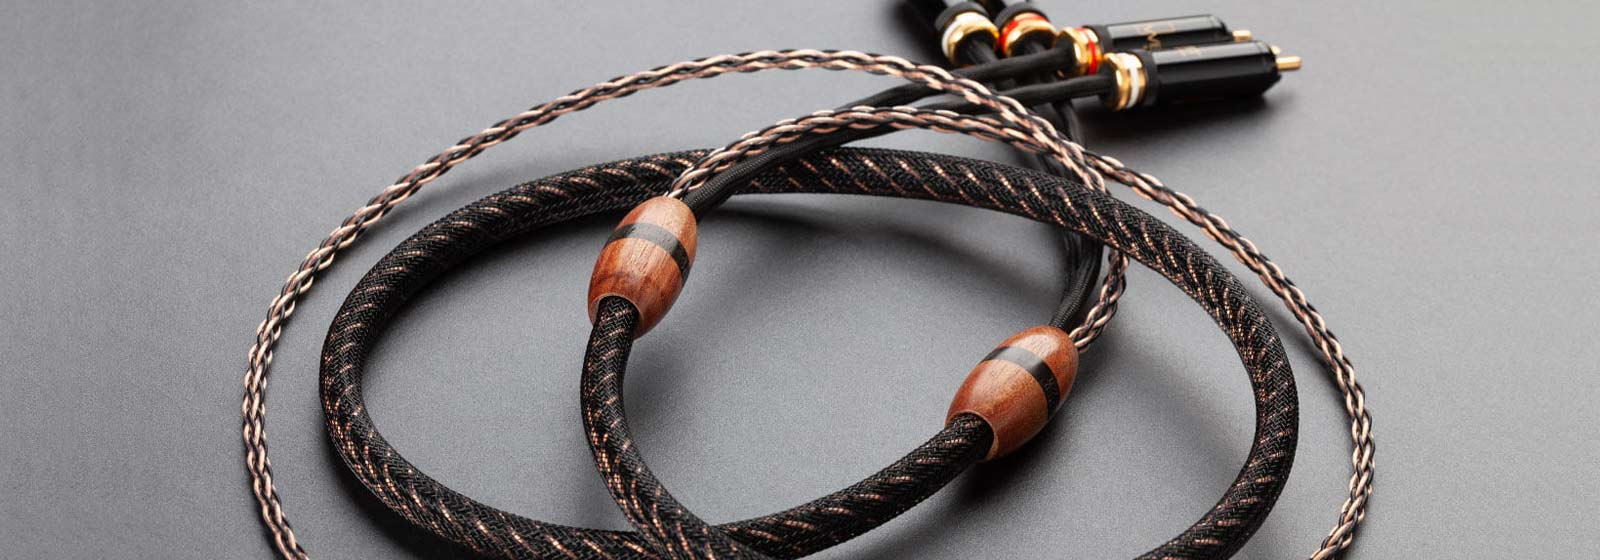 Kimber-Select-Phono-copper-cable